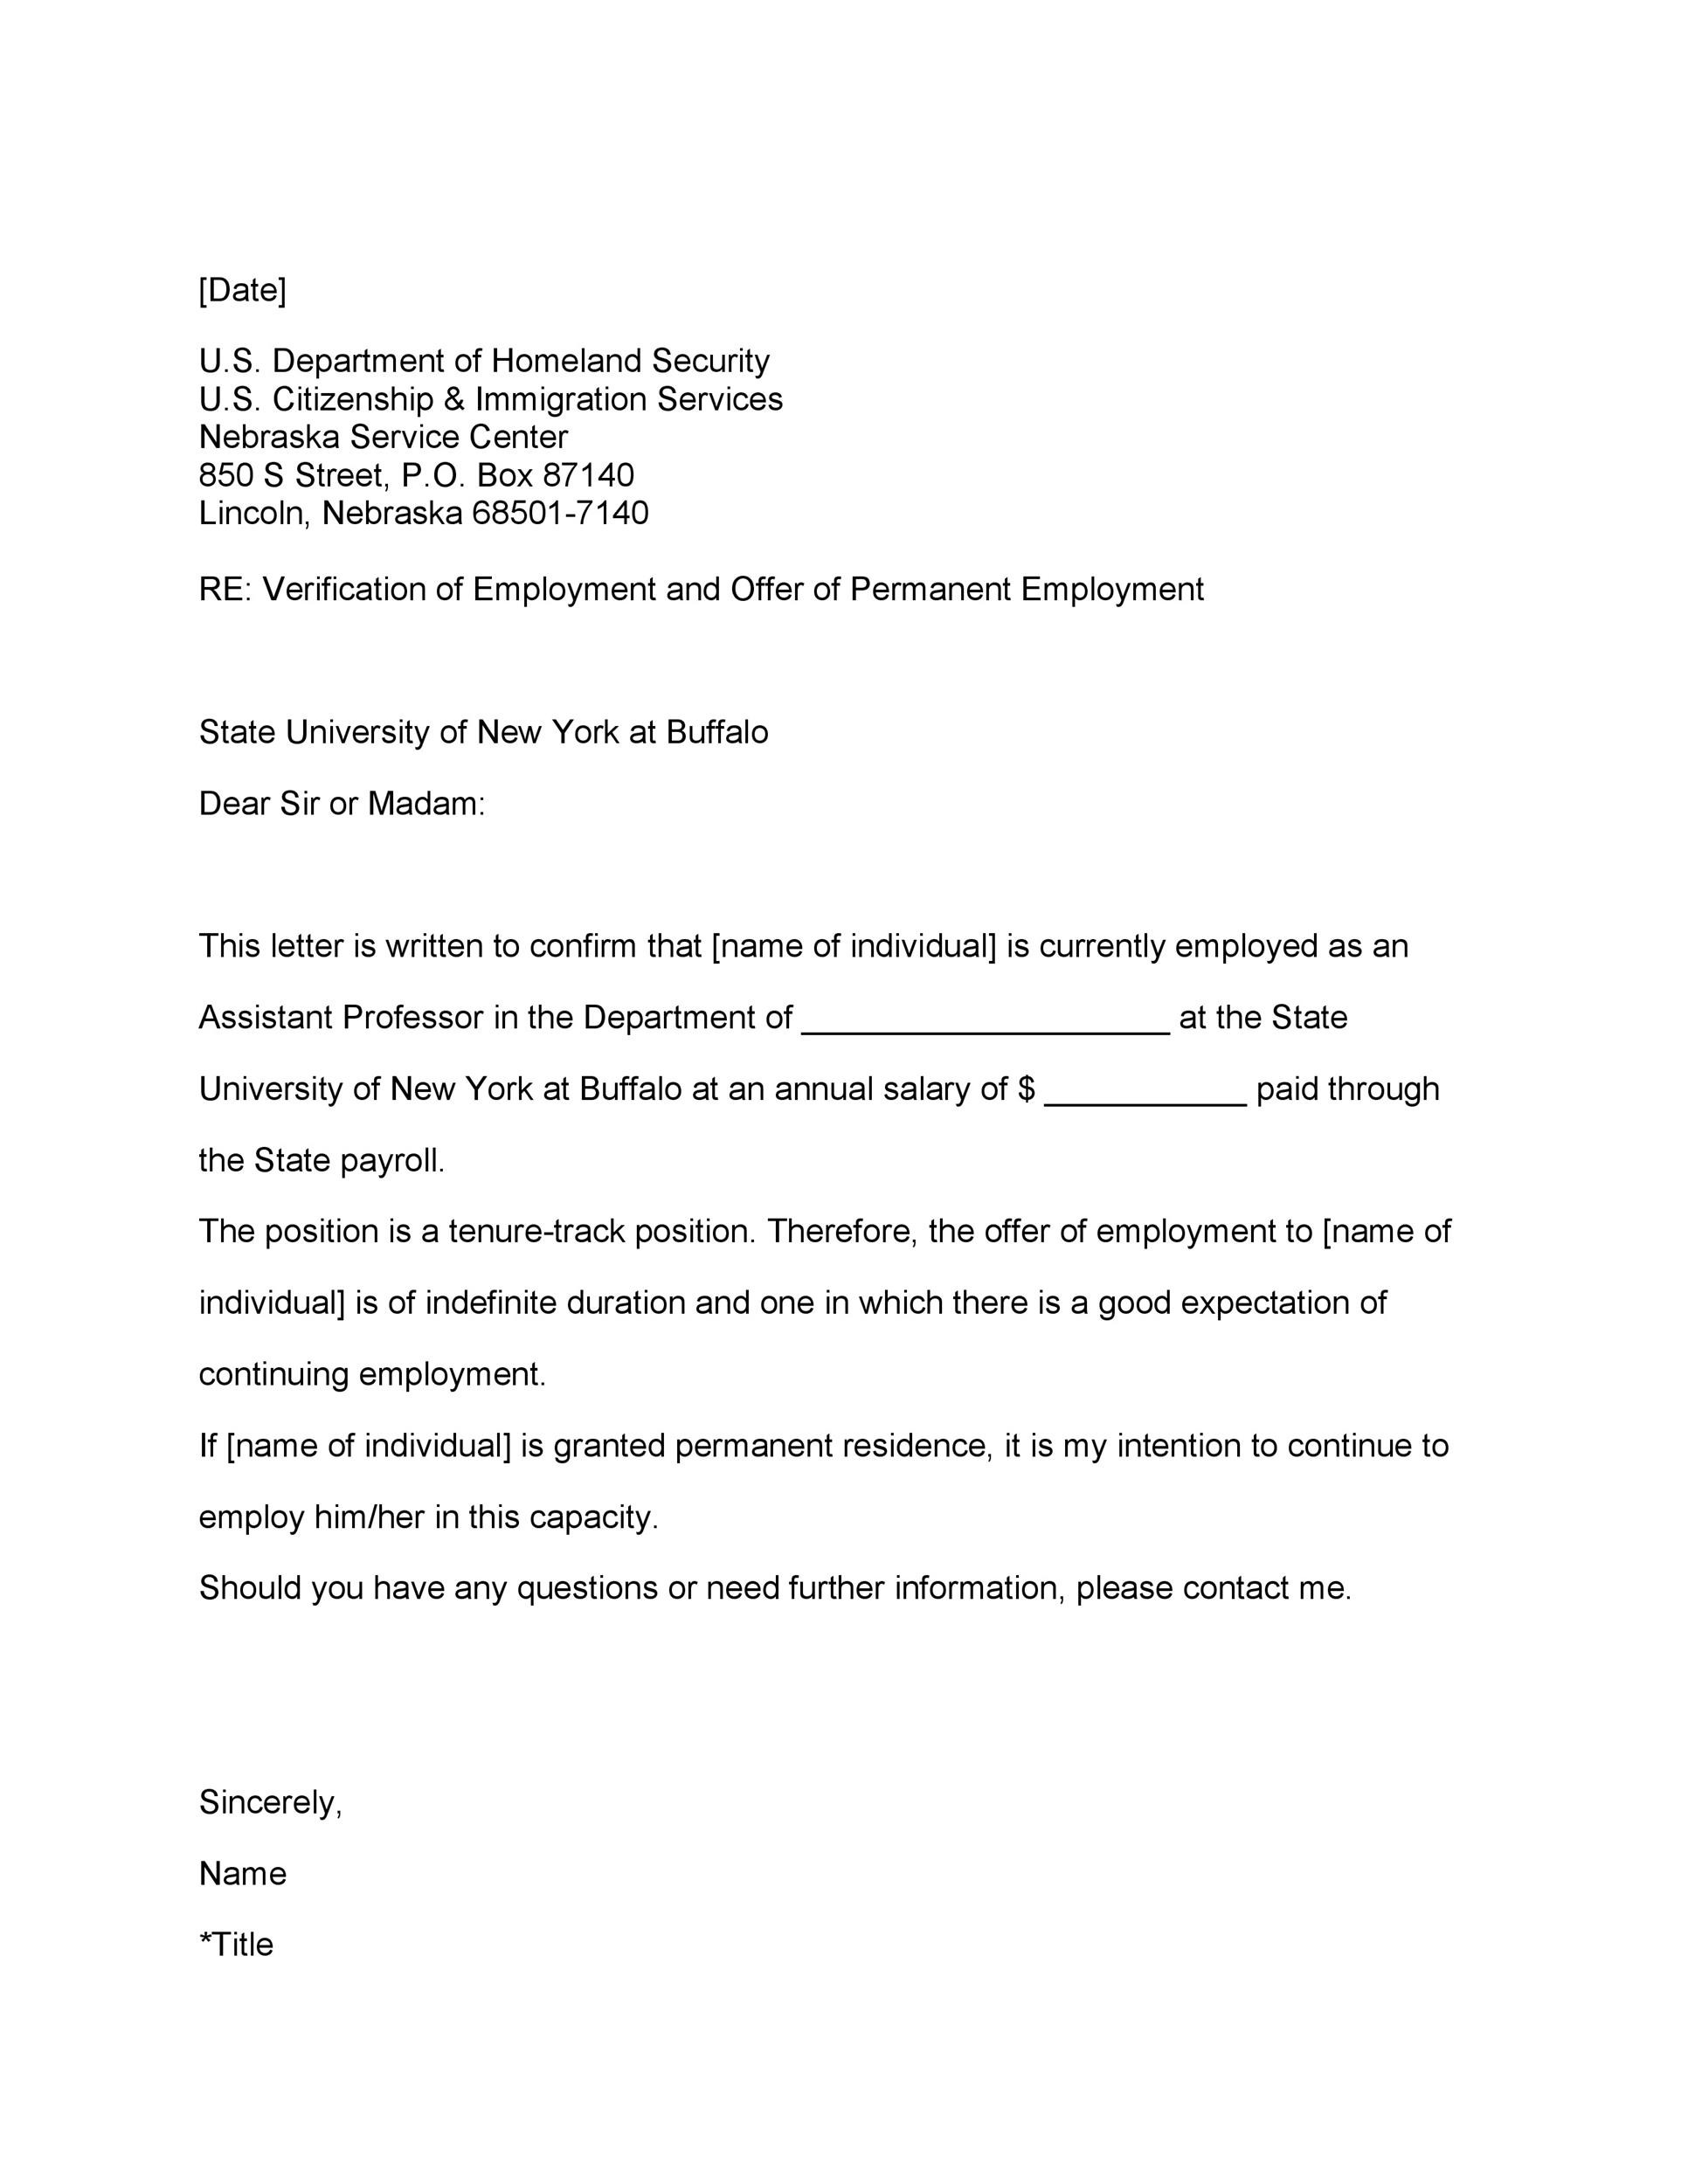 40 Proof of Employment Letters, Verification Forms  Samples - employee verification letter